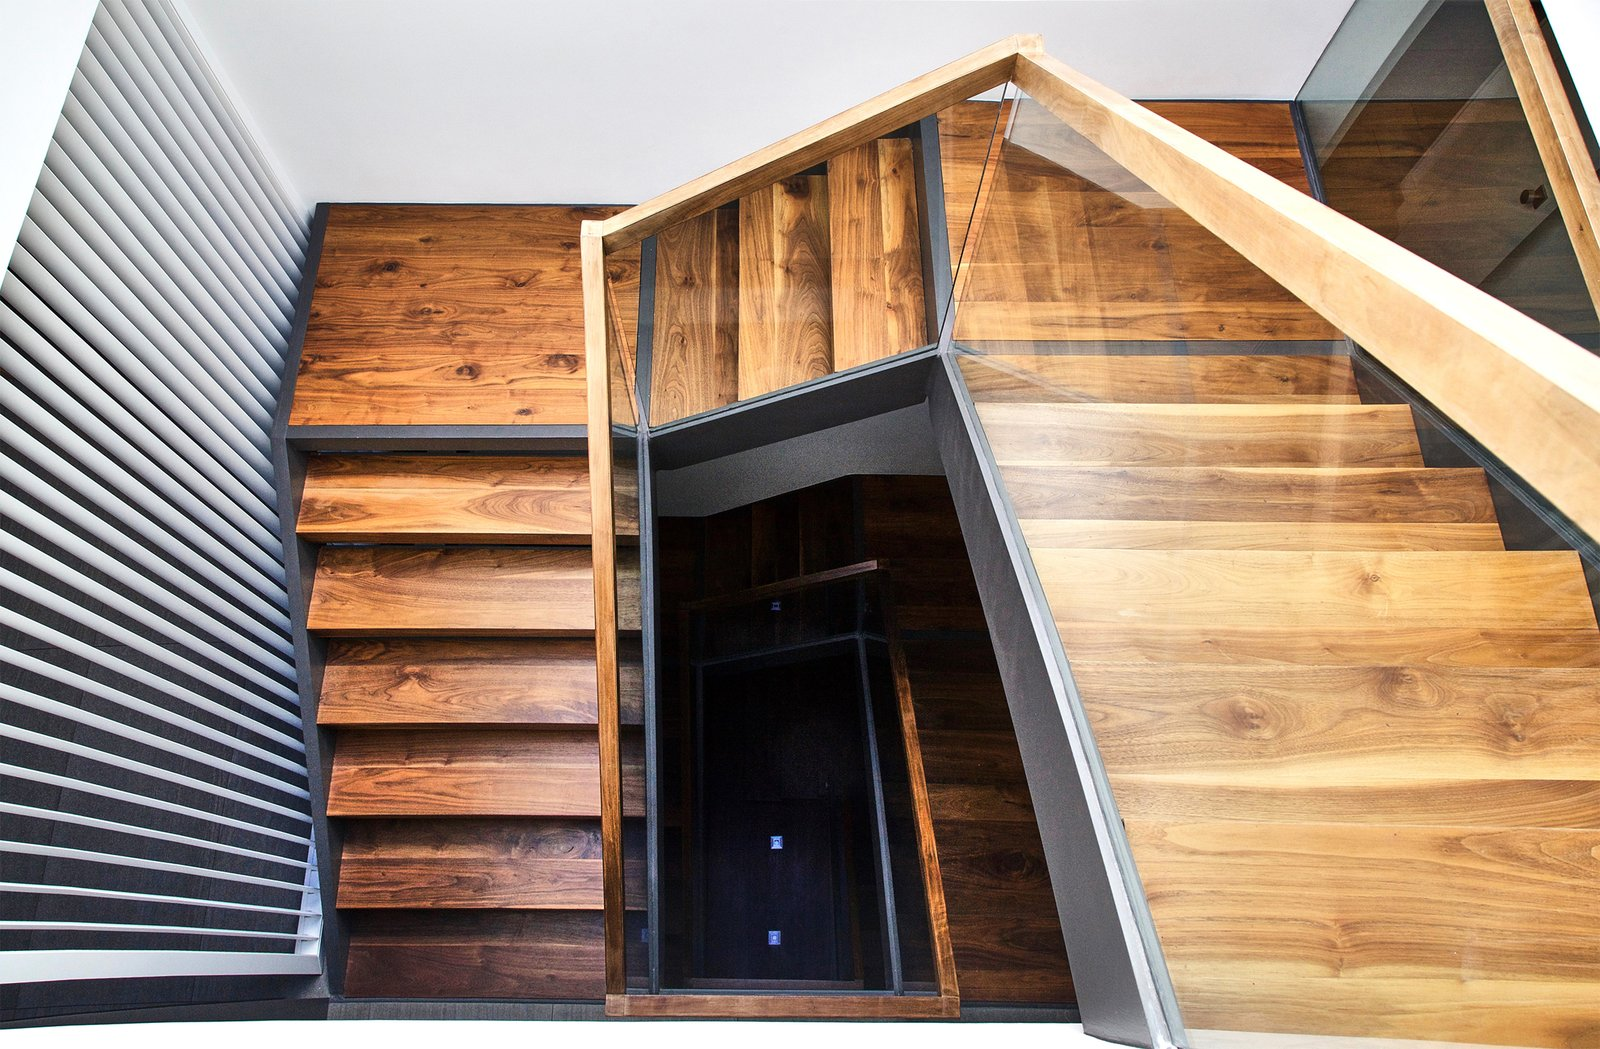 Staircase, Wood Railing, Wood Tread, and Glass Railing Walnut and Steel stair connecting all floors  Lyon Residence by Diego Pacheco Design Practice